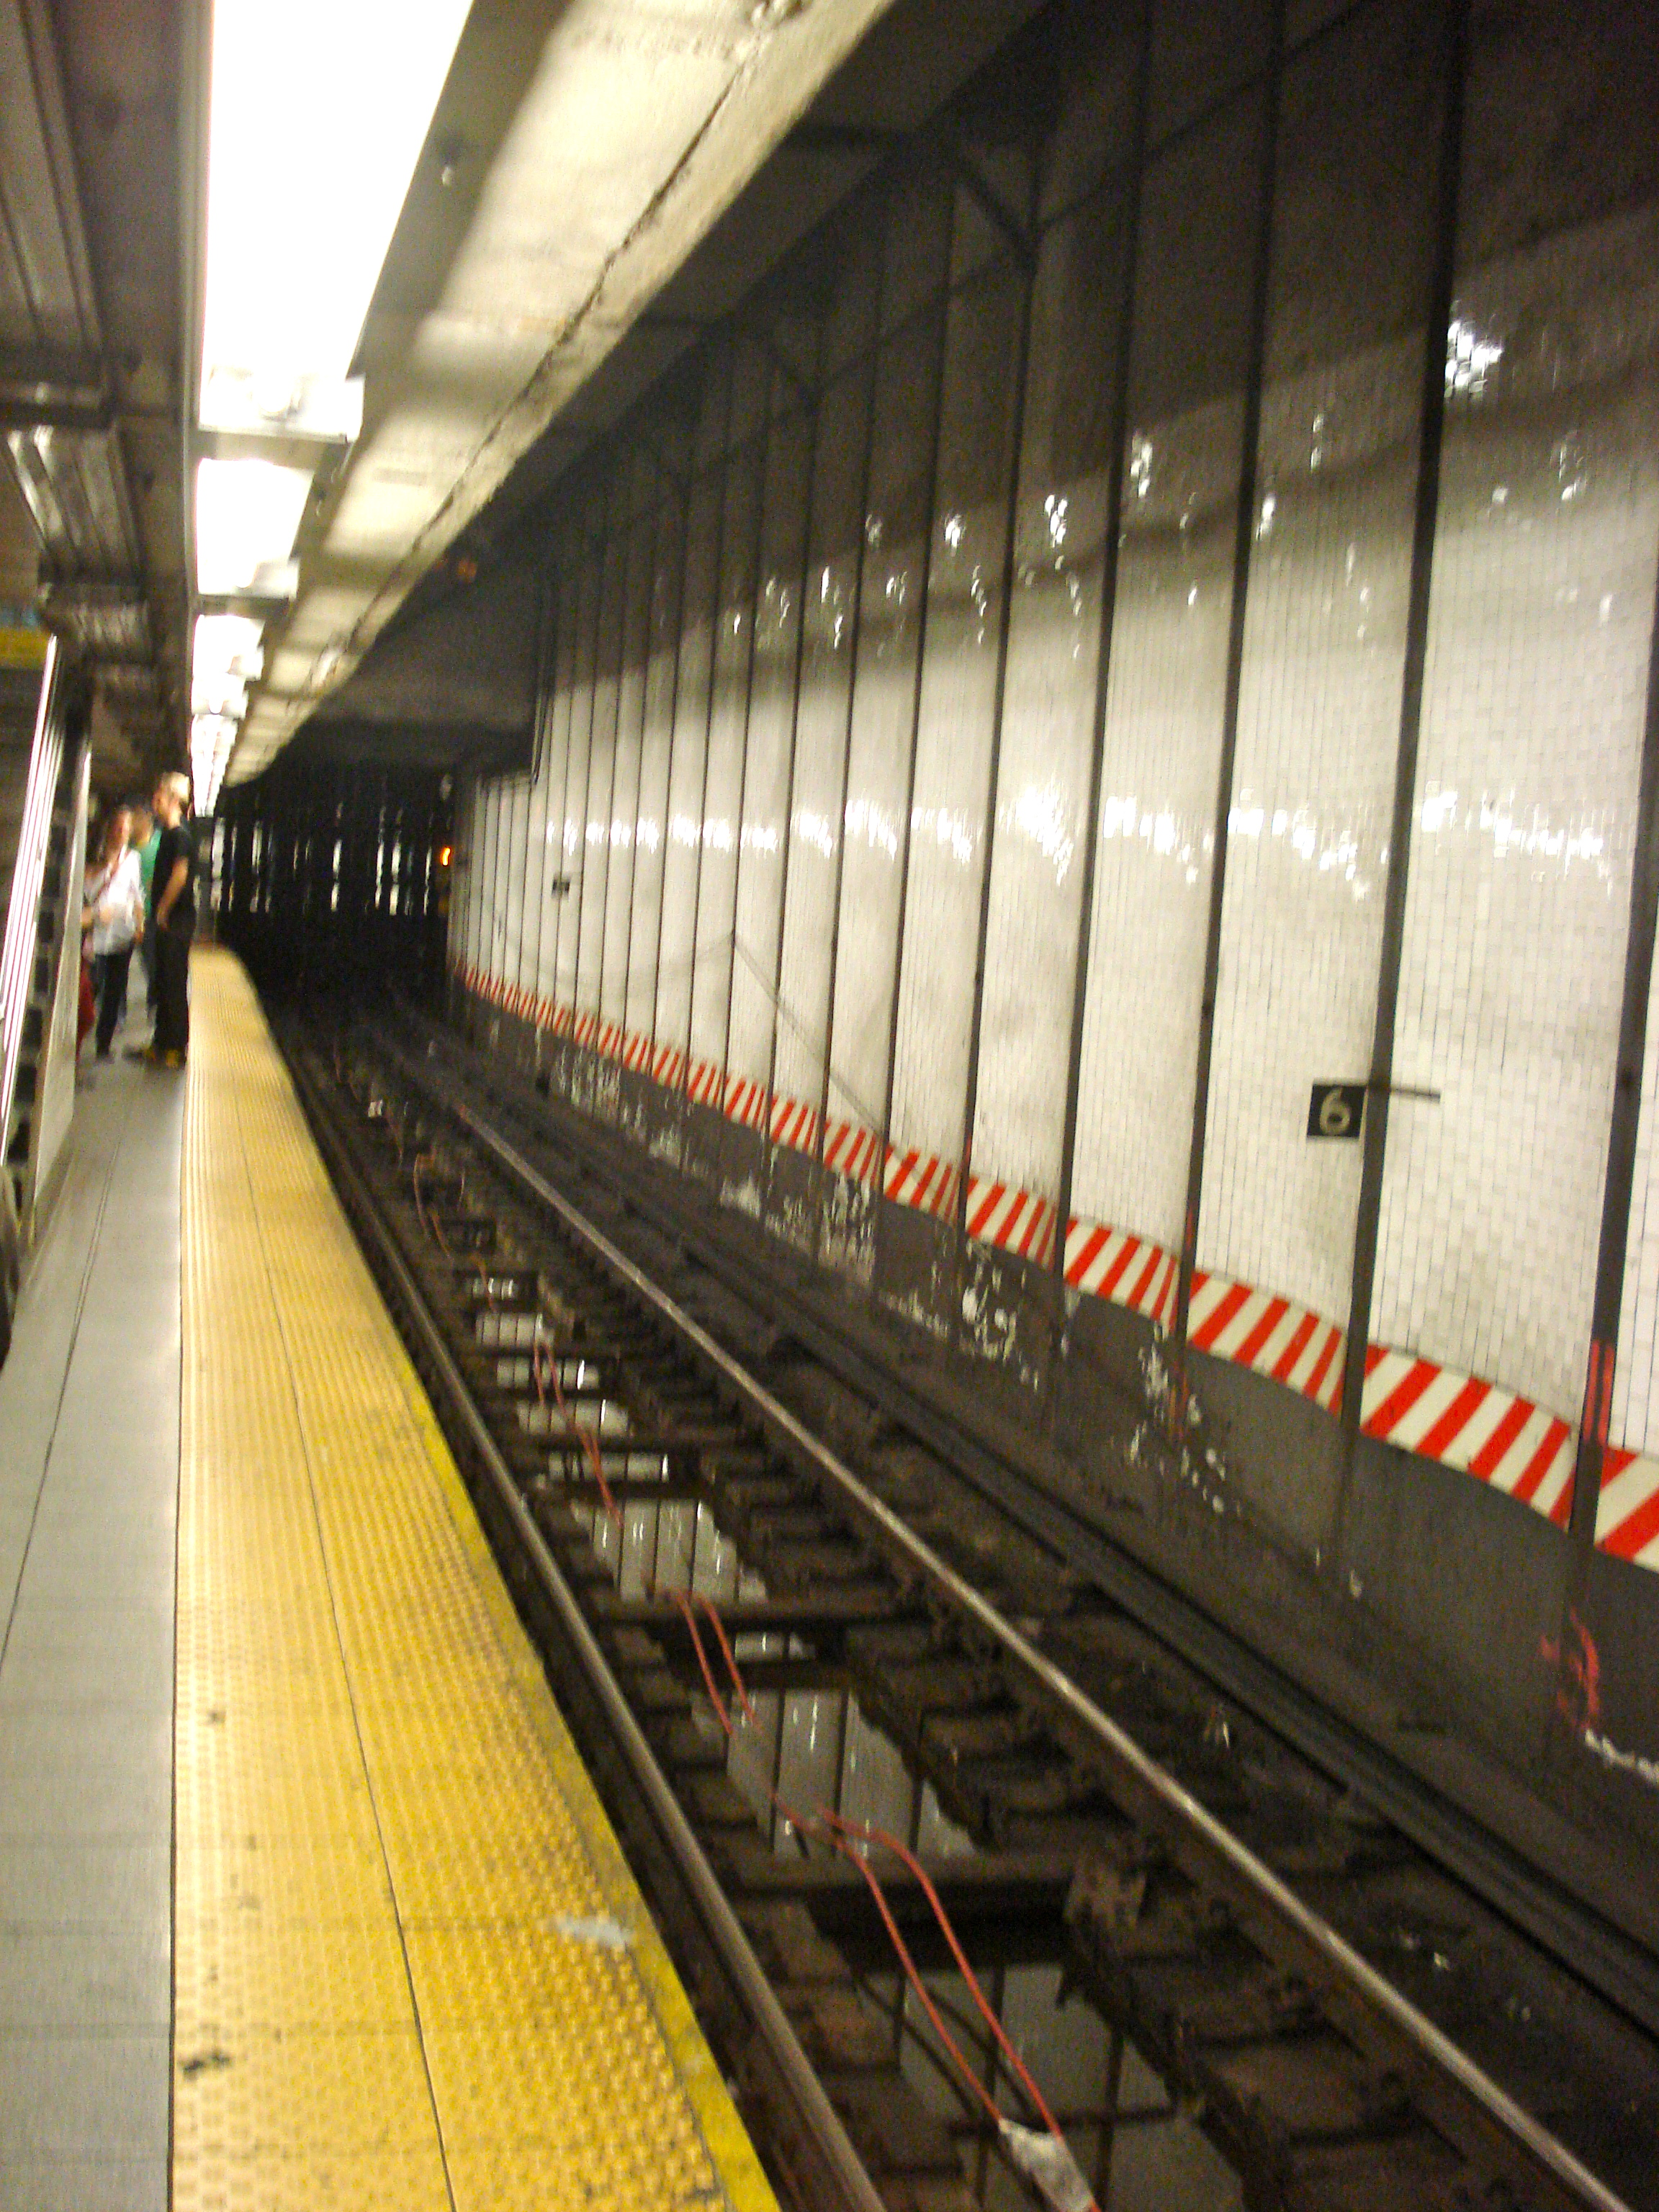 Waiting for the subway to take me...somewhere...